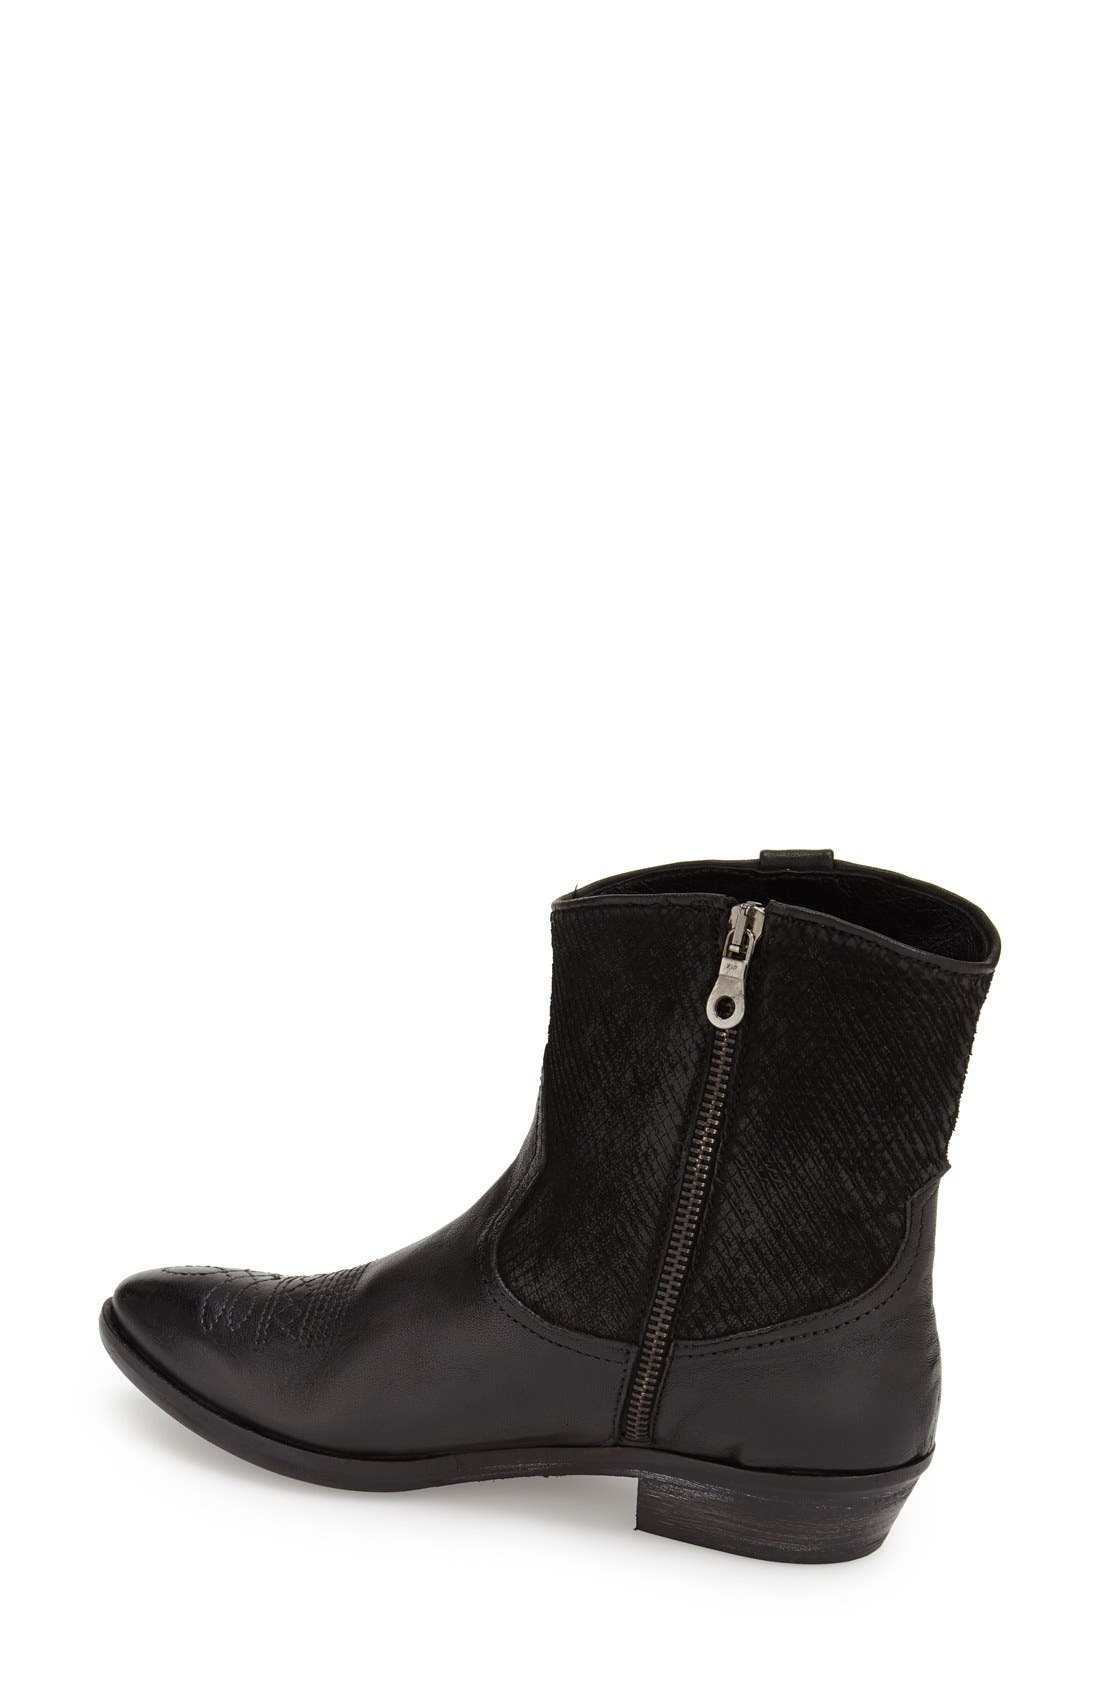 Alternate Image 2  - KBR Flat Boot (Women)